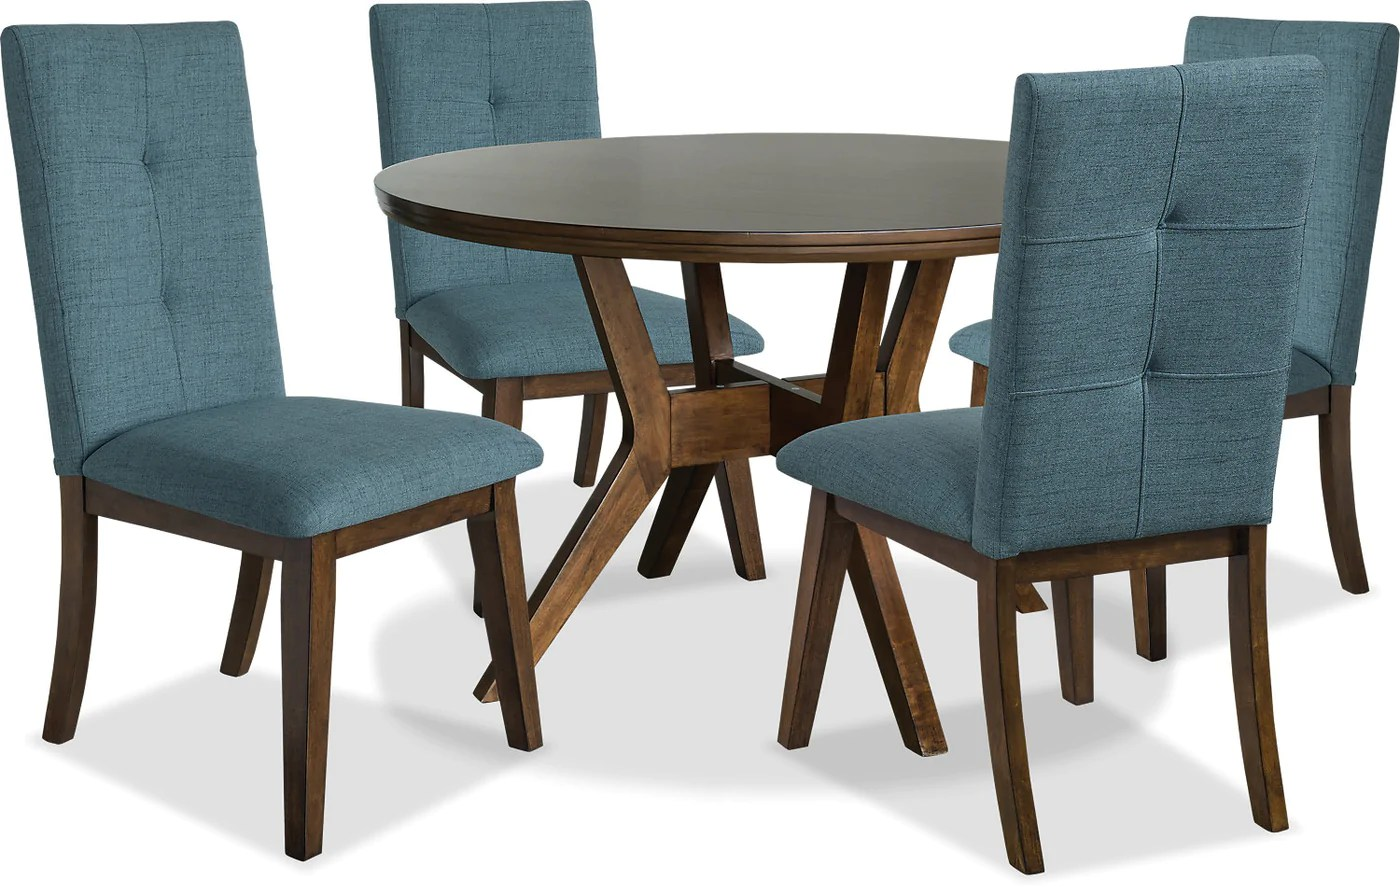 Aqua Dining Chairs Chelsea 5 Piece Round Dining Table Package With Aqua Chairs